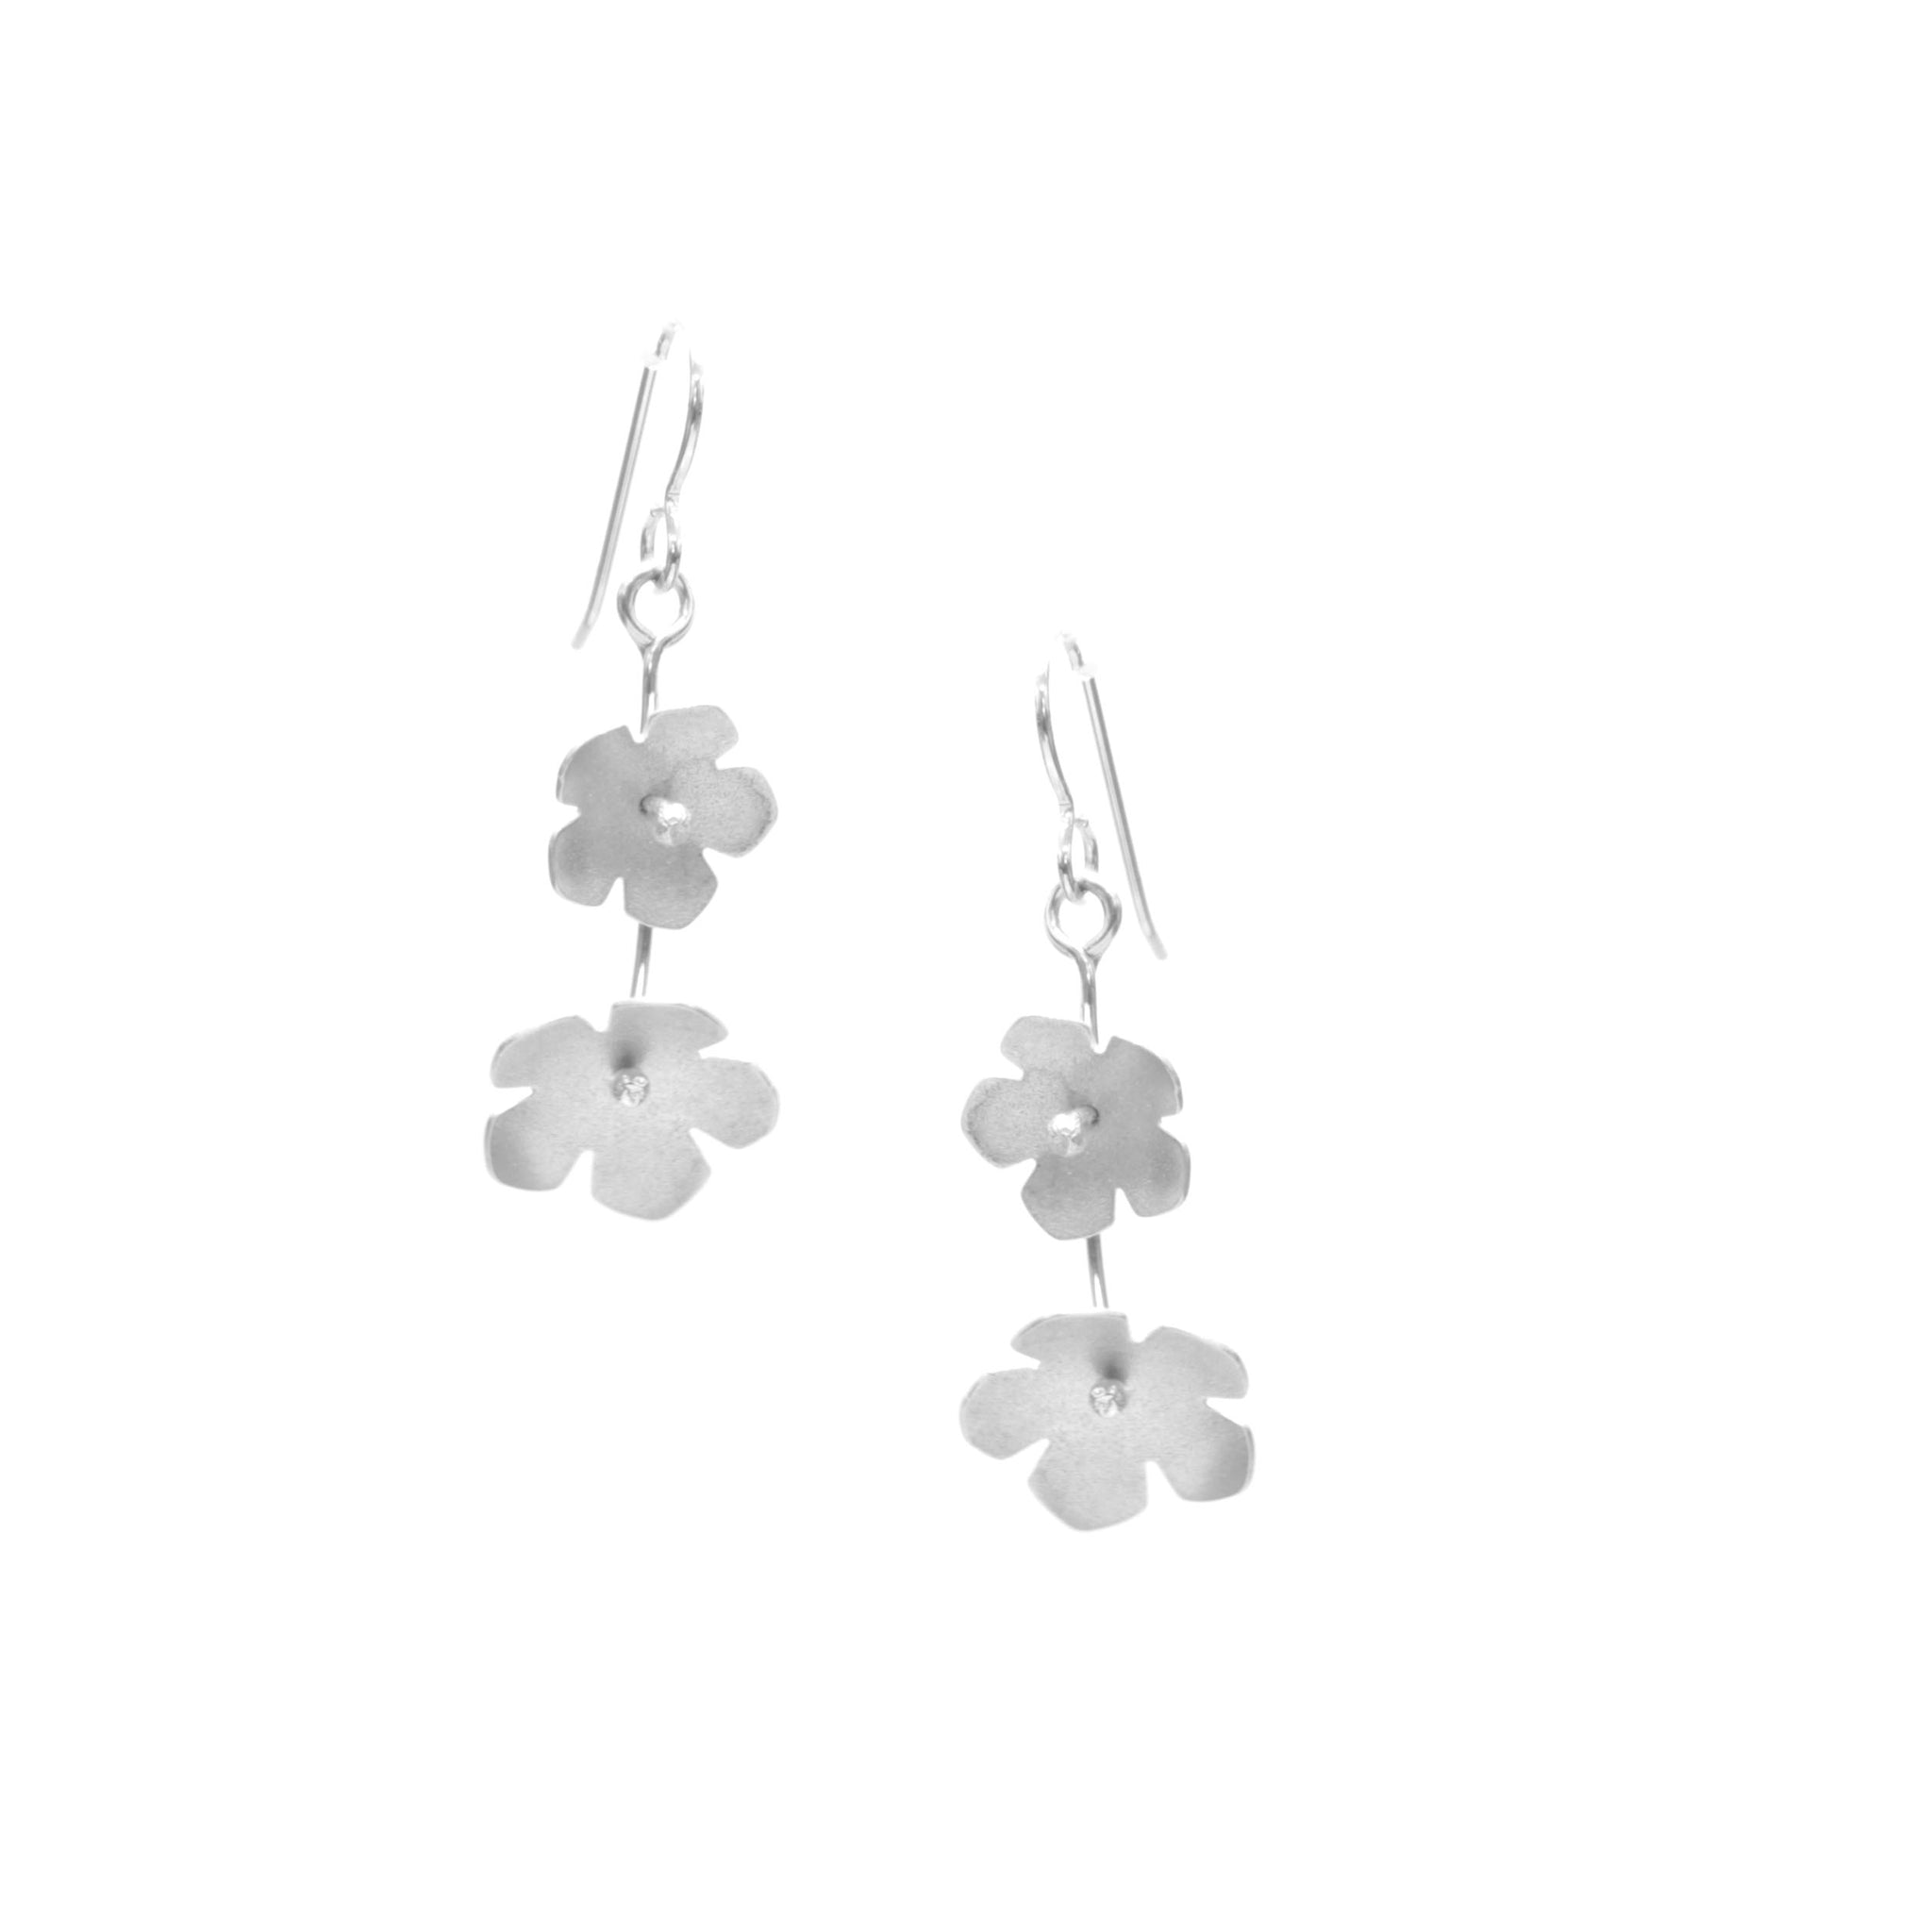 Wild Strawberry Earrings, Double Blossom Drop